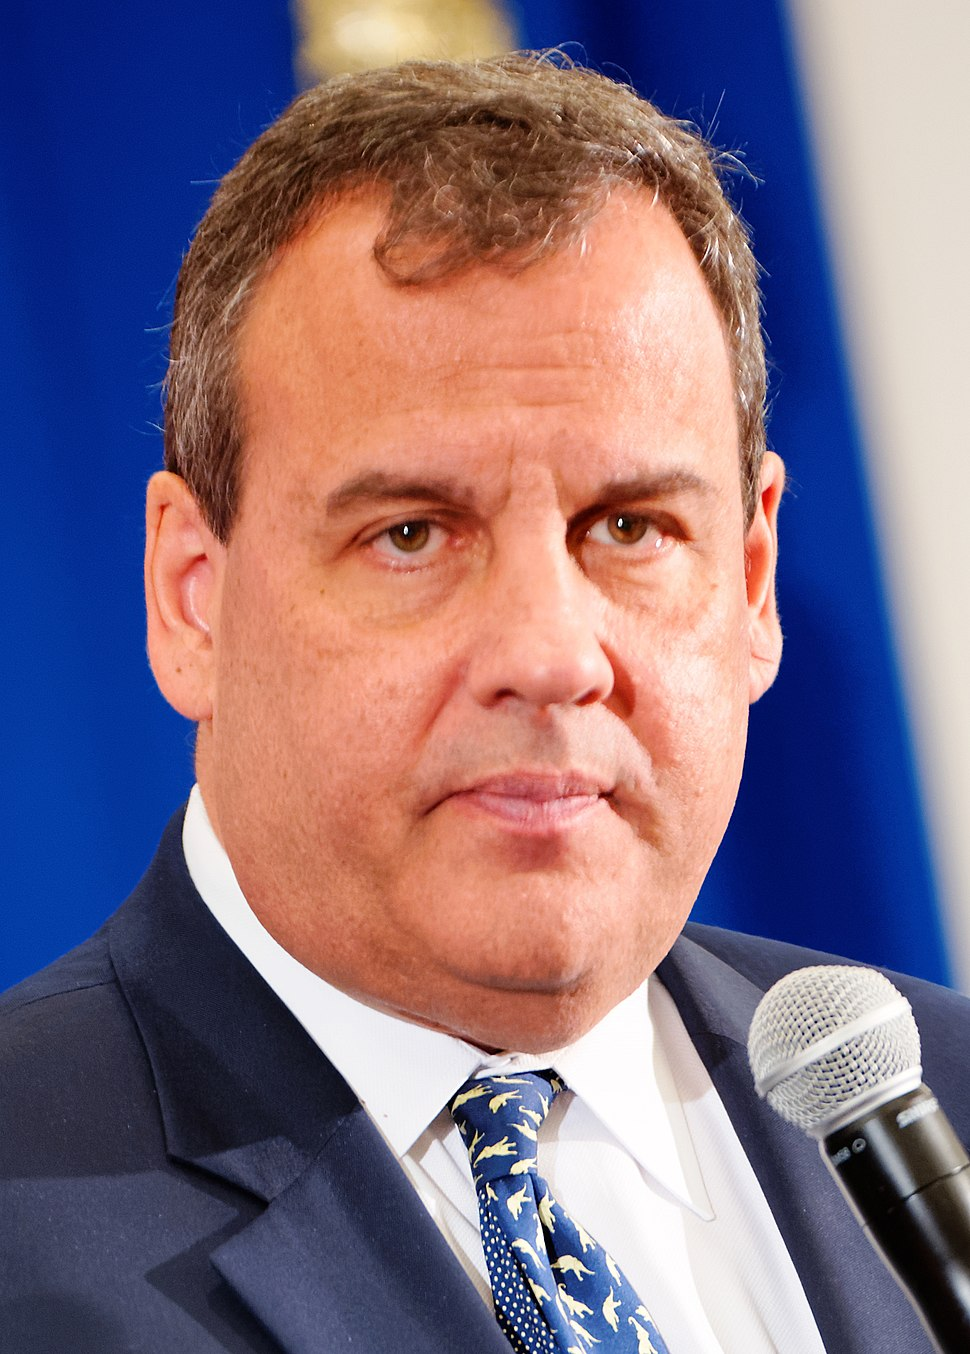 Chris Christie April 2015 (cropped)